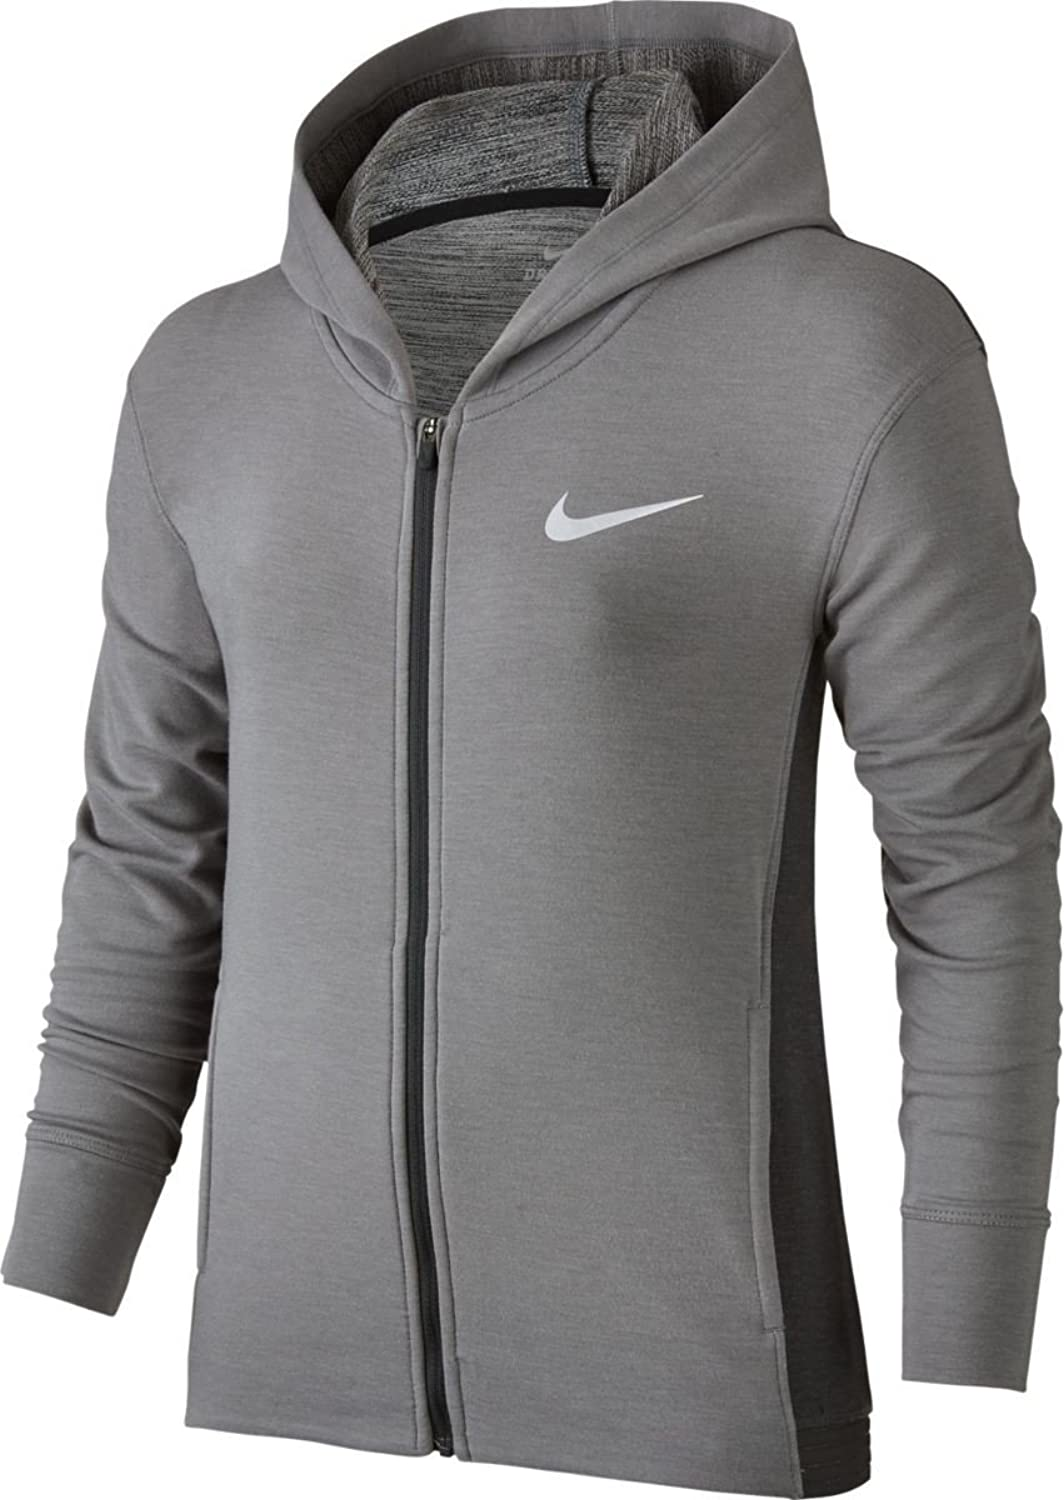 Nike G Nk Hoodie FZ Obsessed Sweater Mdchen